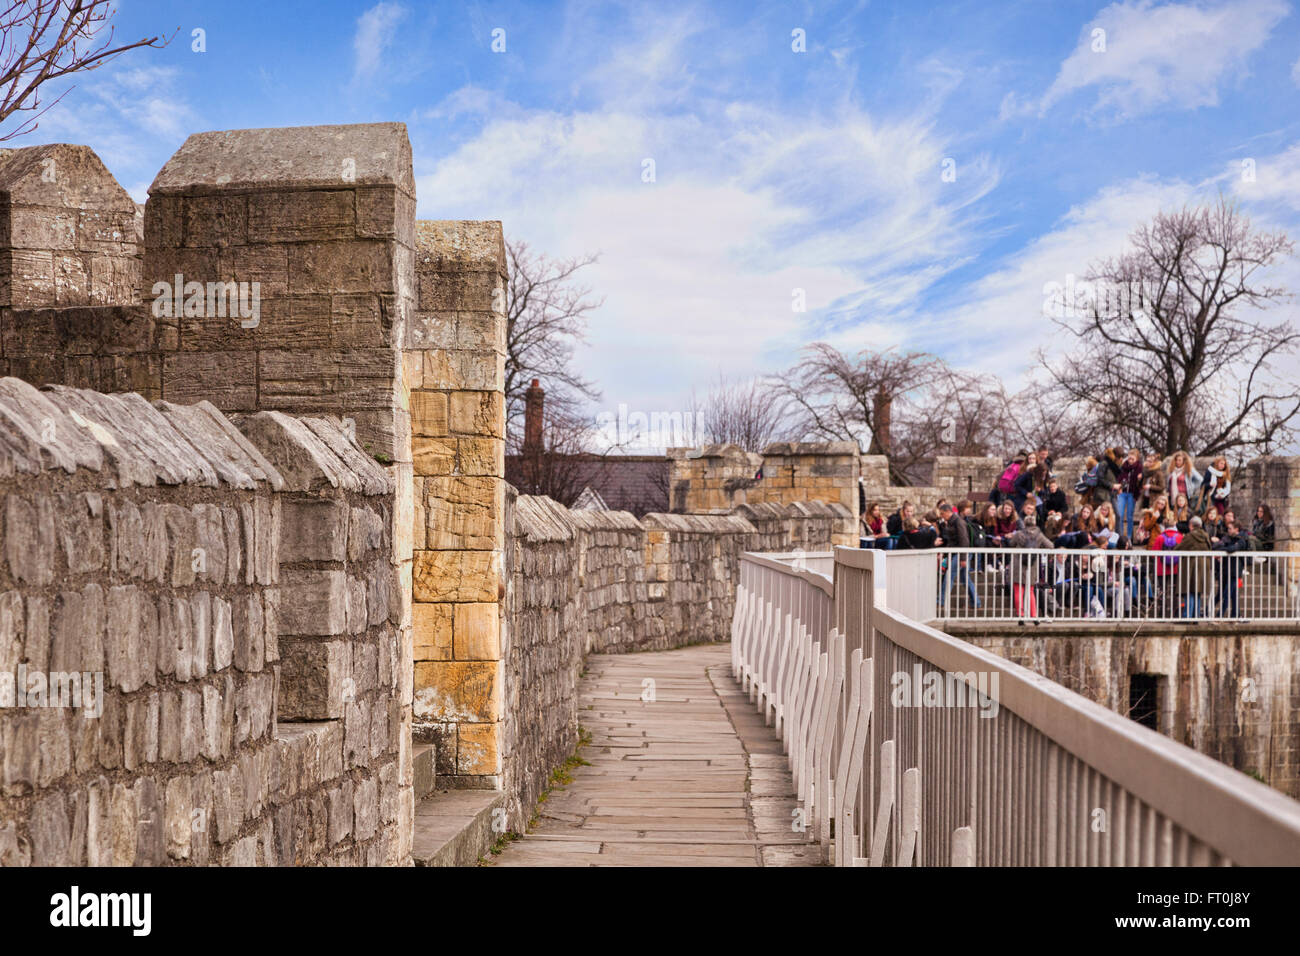 View along York City Walls, York, North Yorkshire, England, UK - Stock Image